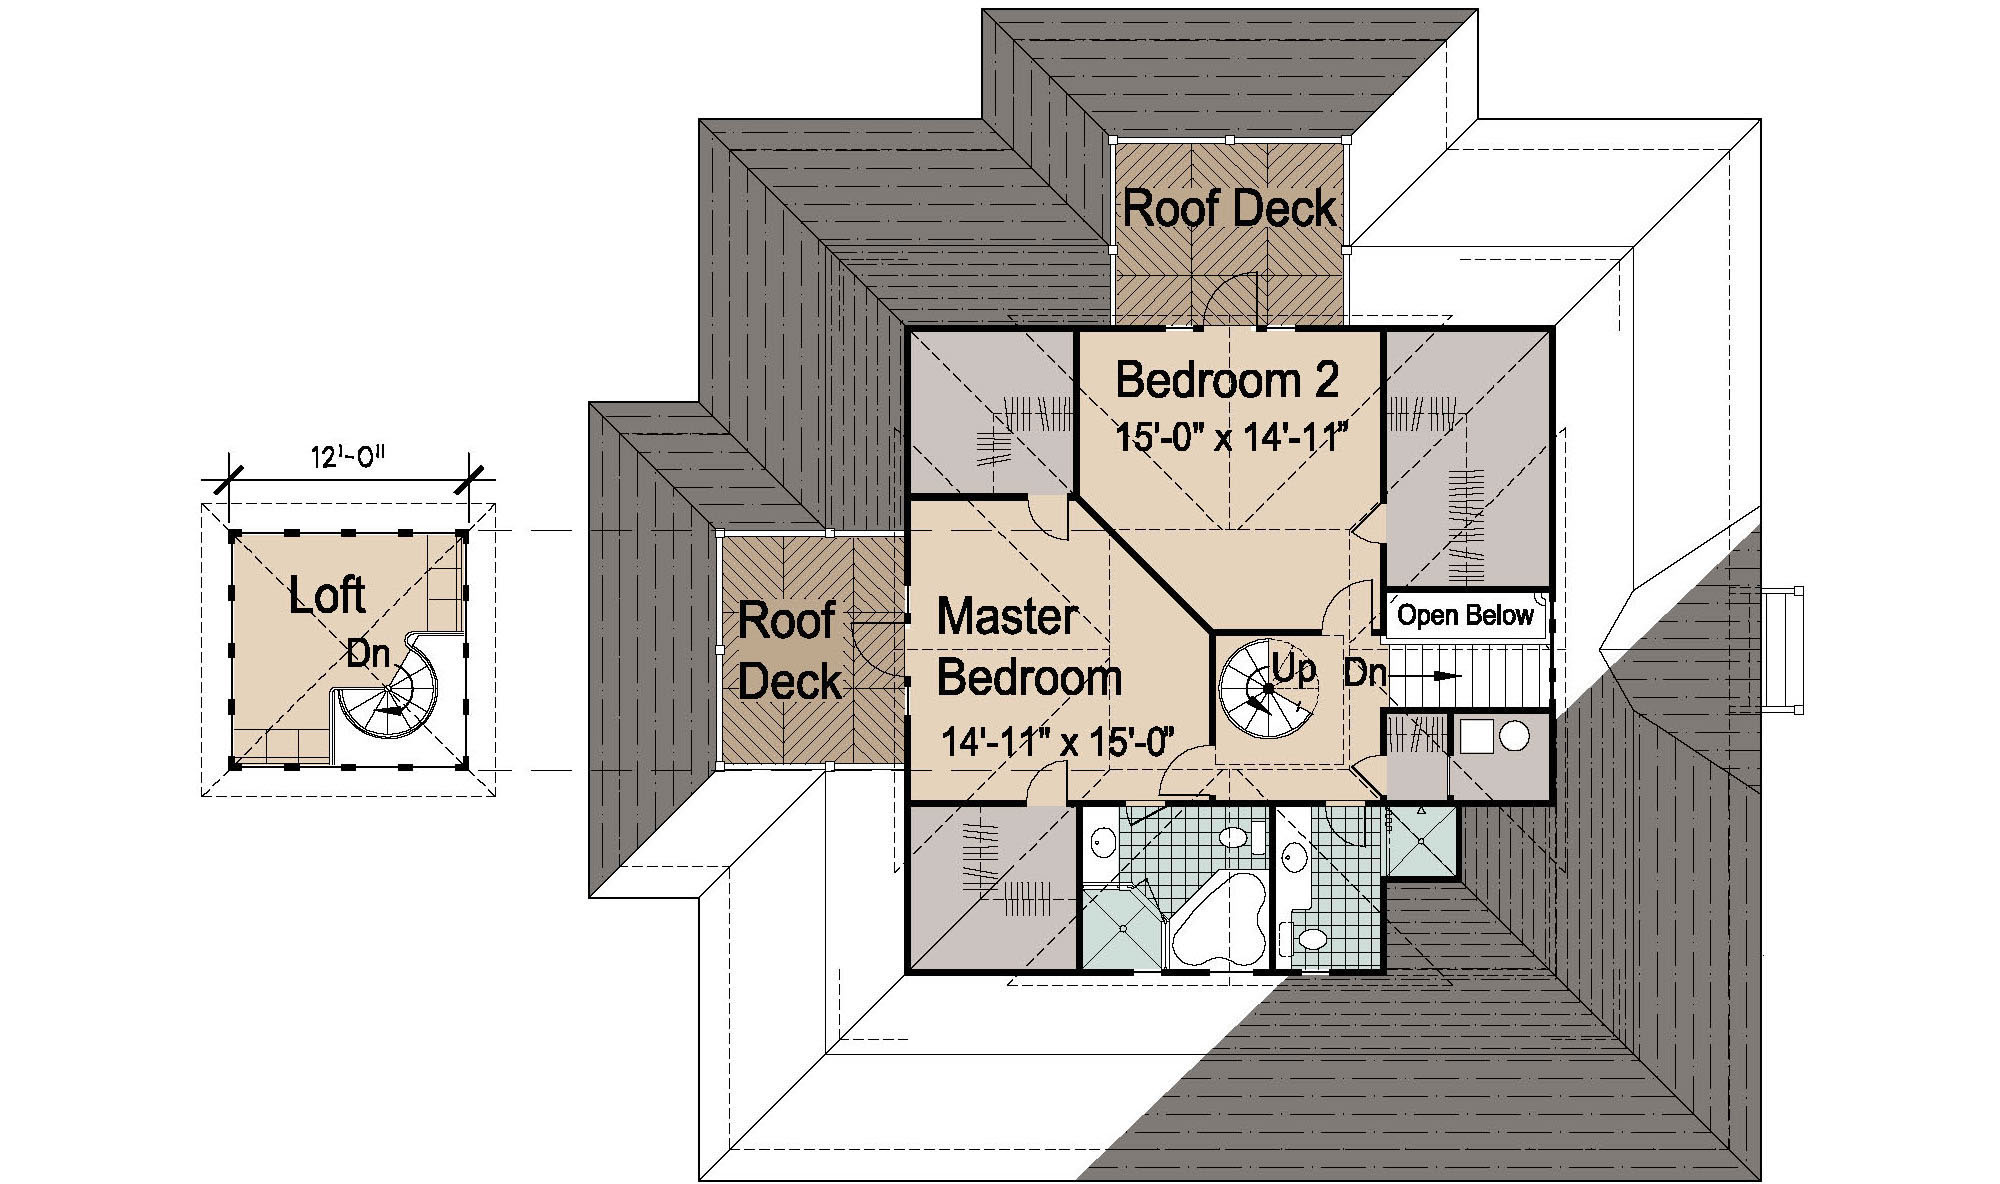 island cottage basement foundation 2470 sf plus 1521 sf